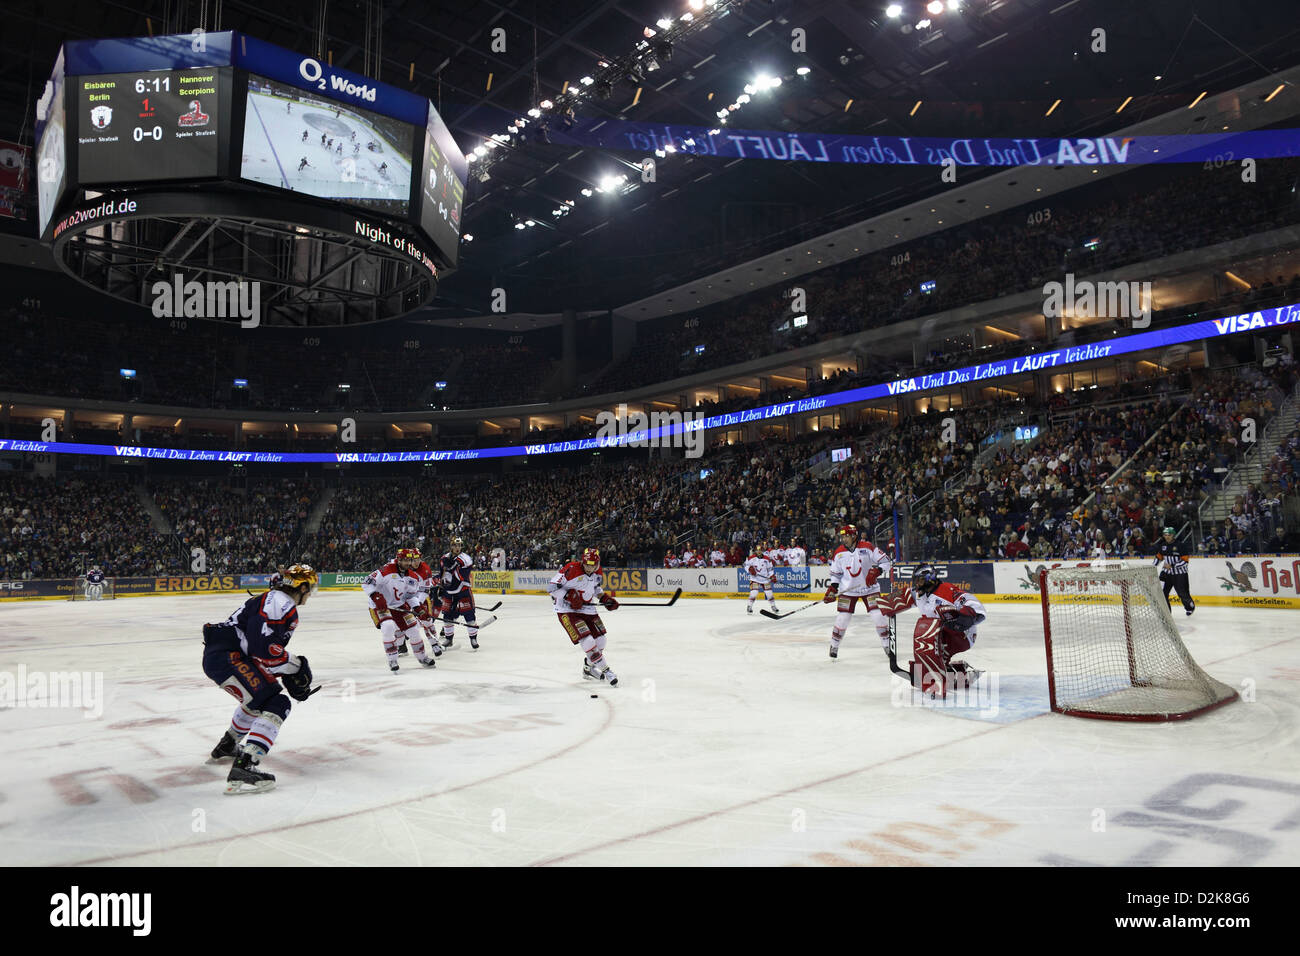 Berlin, Germany, Hockey game at the O2 World Arena - Stock Image